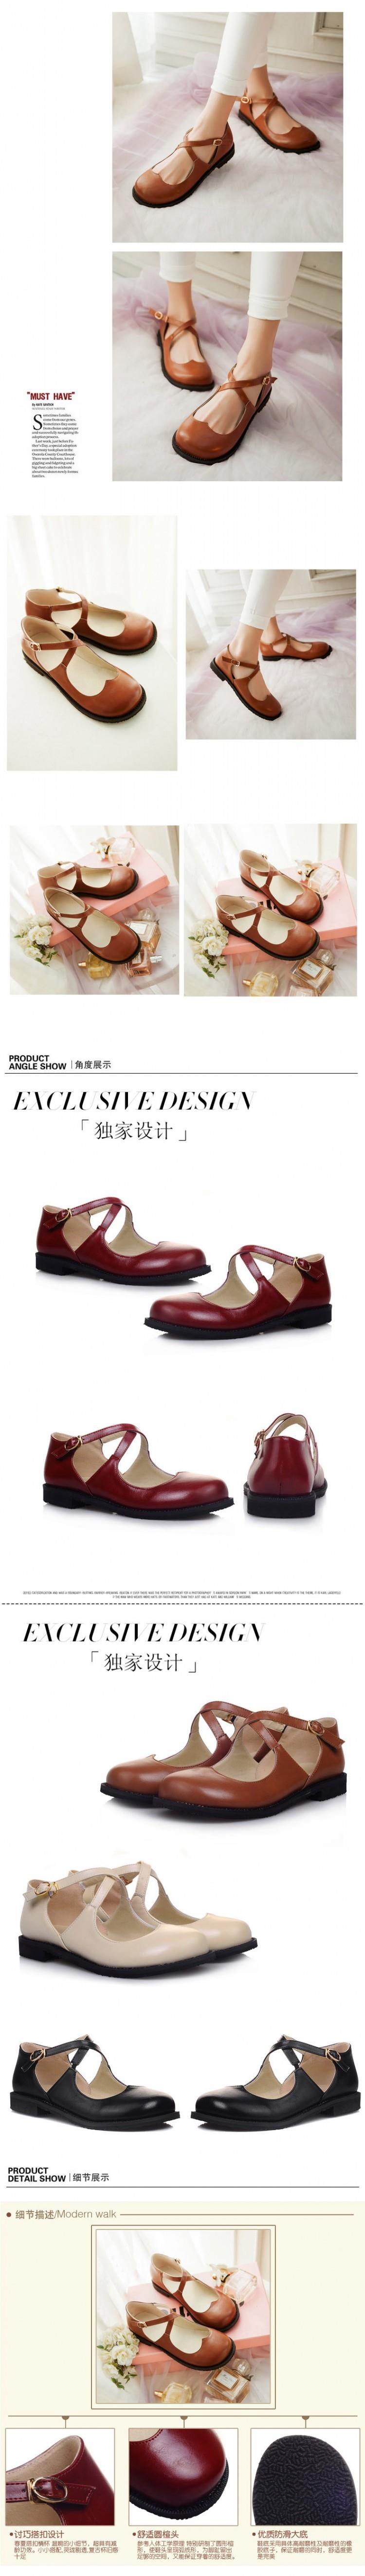 New Style Vintage Round Toe Mary Jane Flat Shoes For Woman Low-Heel Sweet  Cute Doll Shoes Lolita Loafers Boat Shoes Big Size 43USD 43.66-47.66 pair 9484887201c7